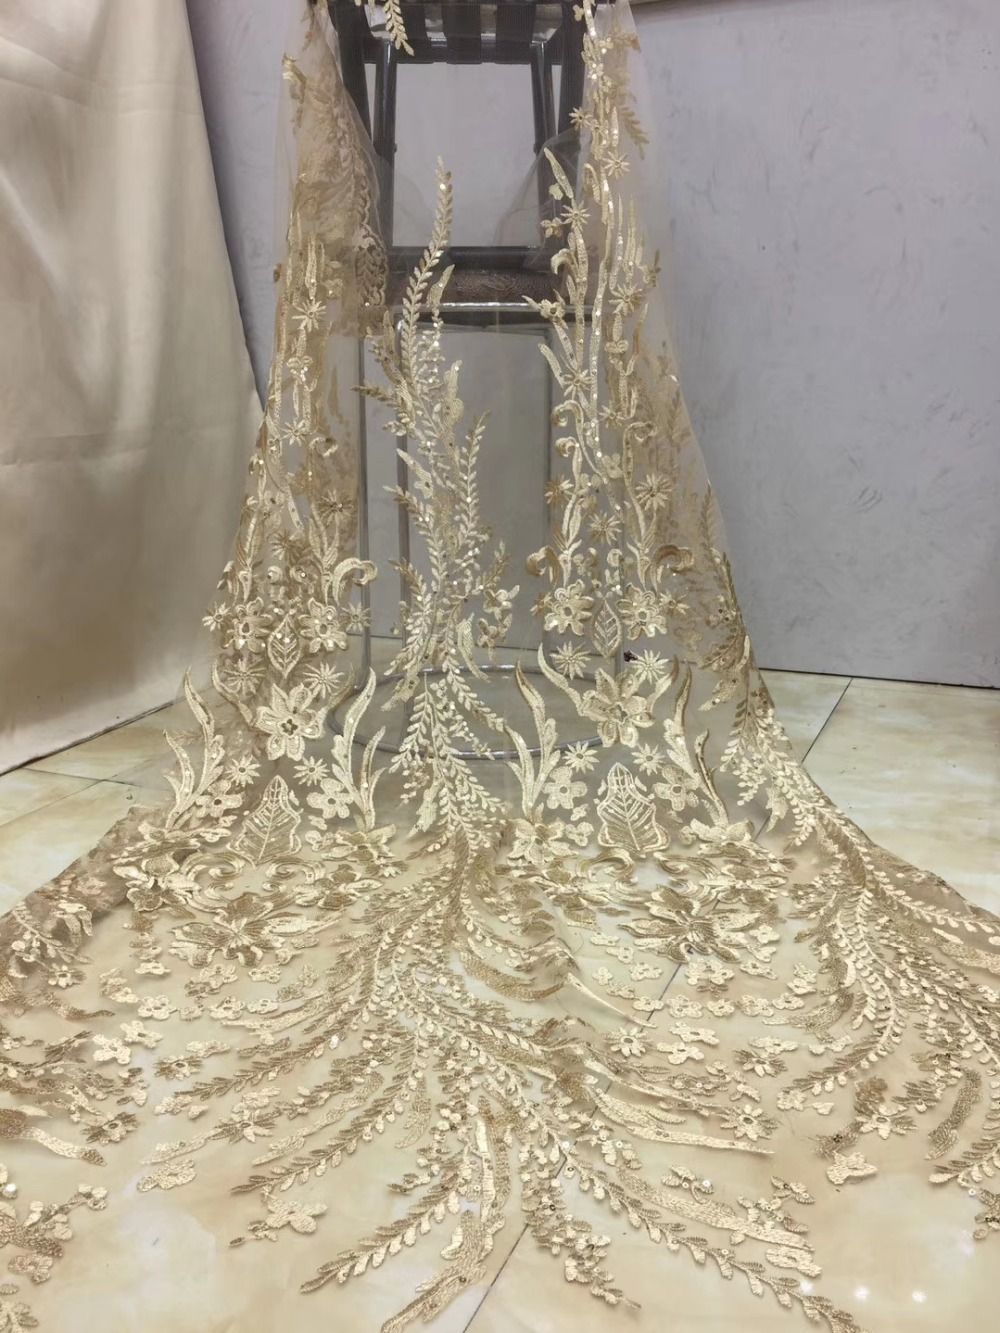 African Lace 2019 French Nigerian Lace Fabric Bridal High Quality Swiss Net Tulle Lace Fabric For Wedding Party    XZXAP162African Lace 2019 French Nigerian Lace Fabric Bridal High Quality Swiss Net Tulle Lace Fabric For Wedding Party    XZXAP162